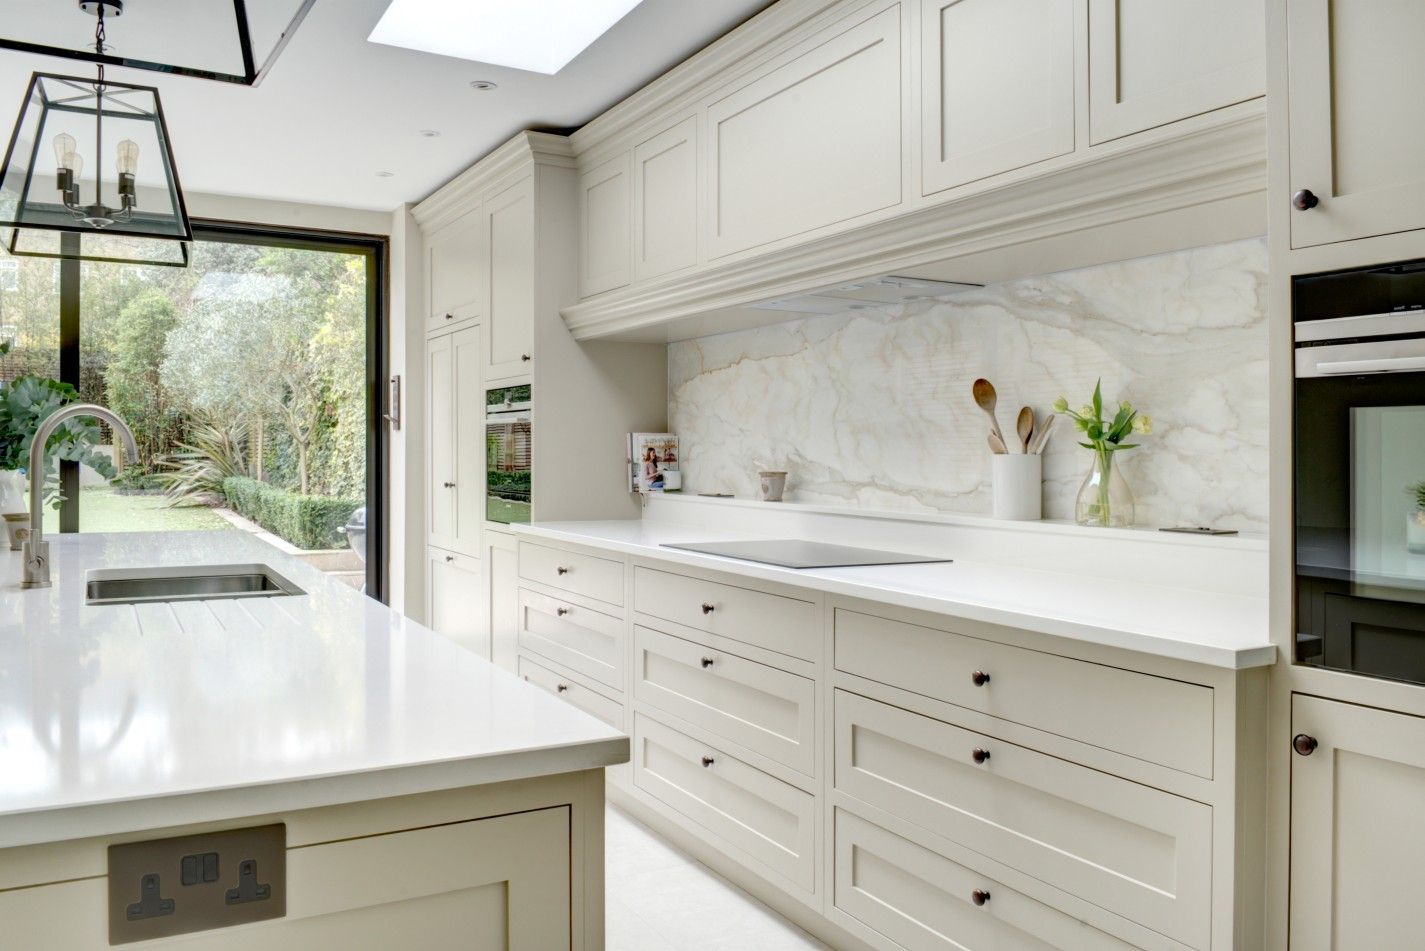 Looking for a bespoke kitchen design firm